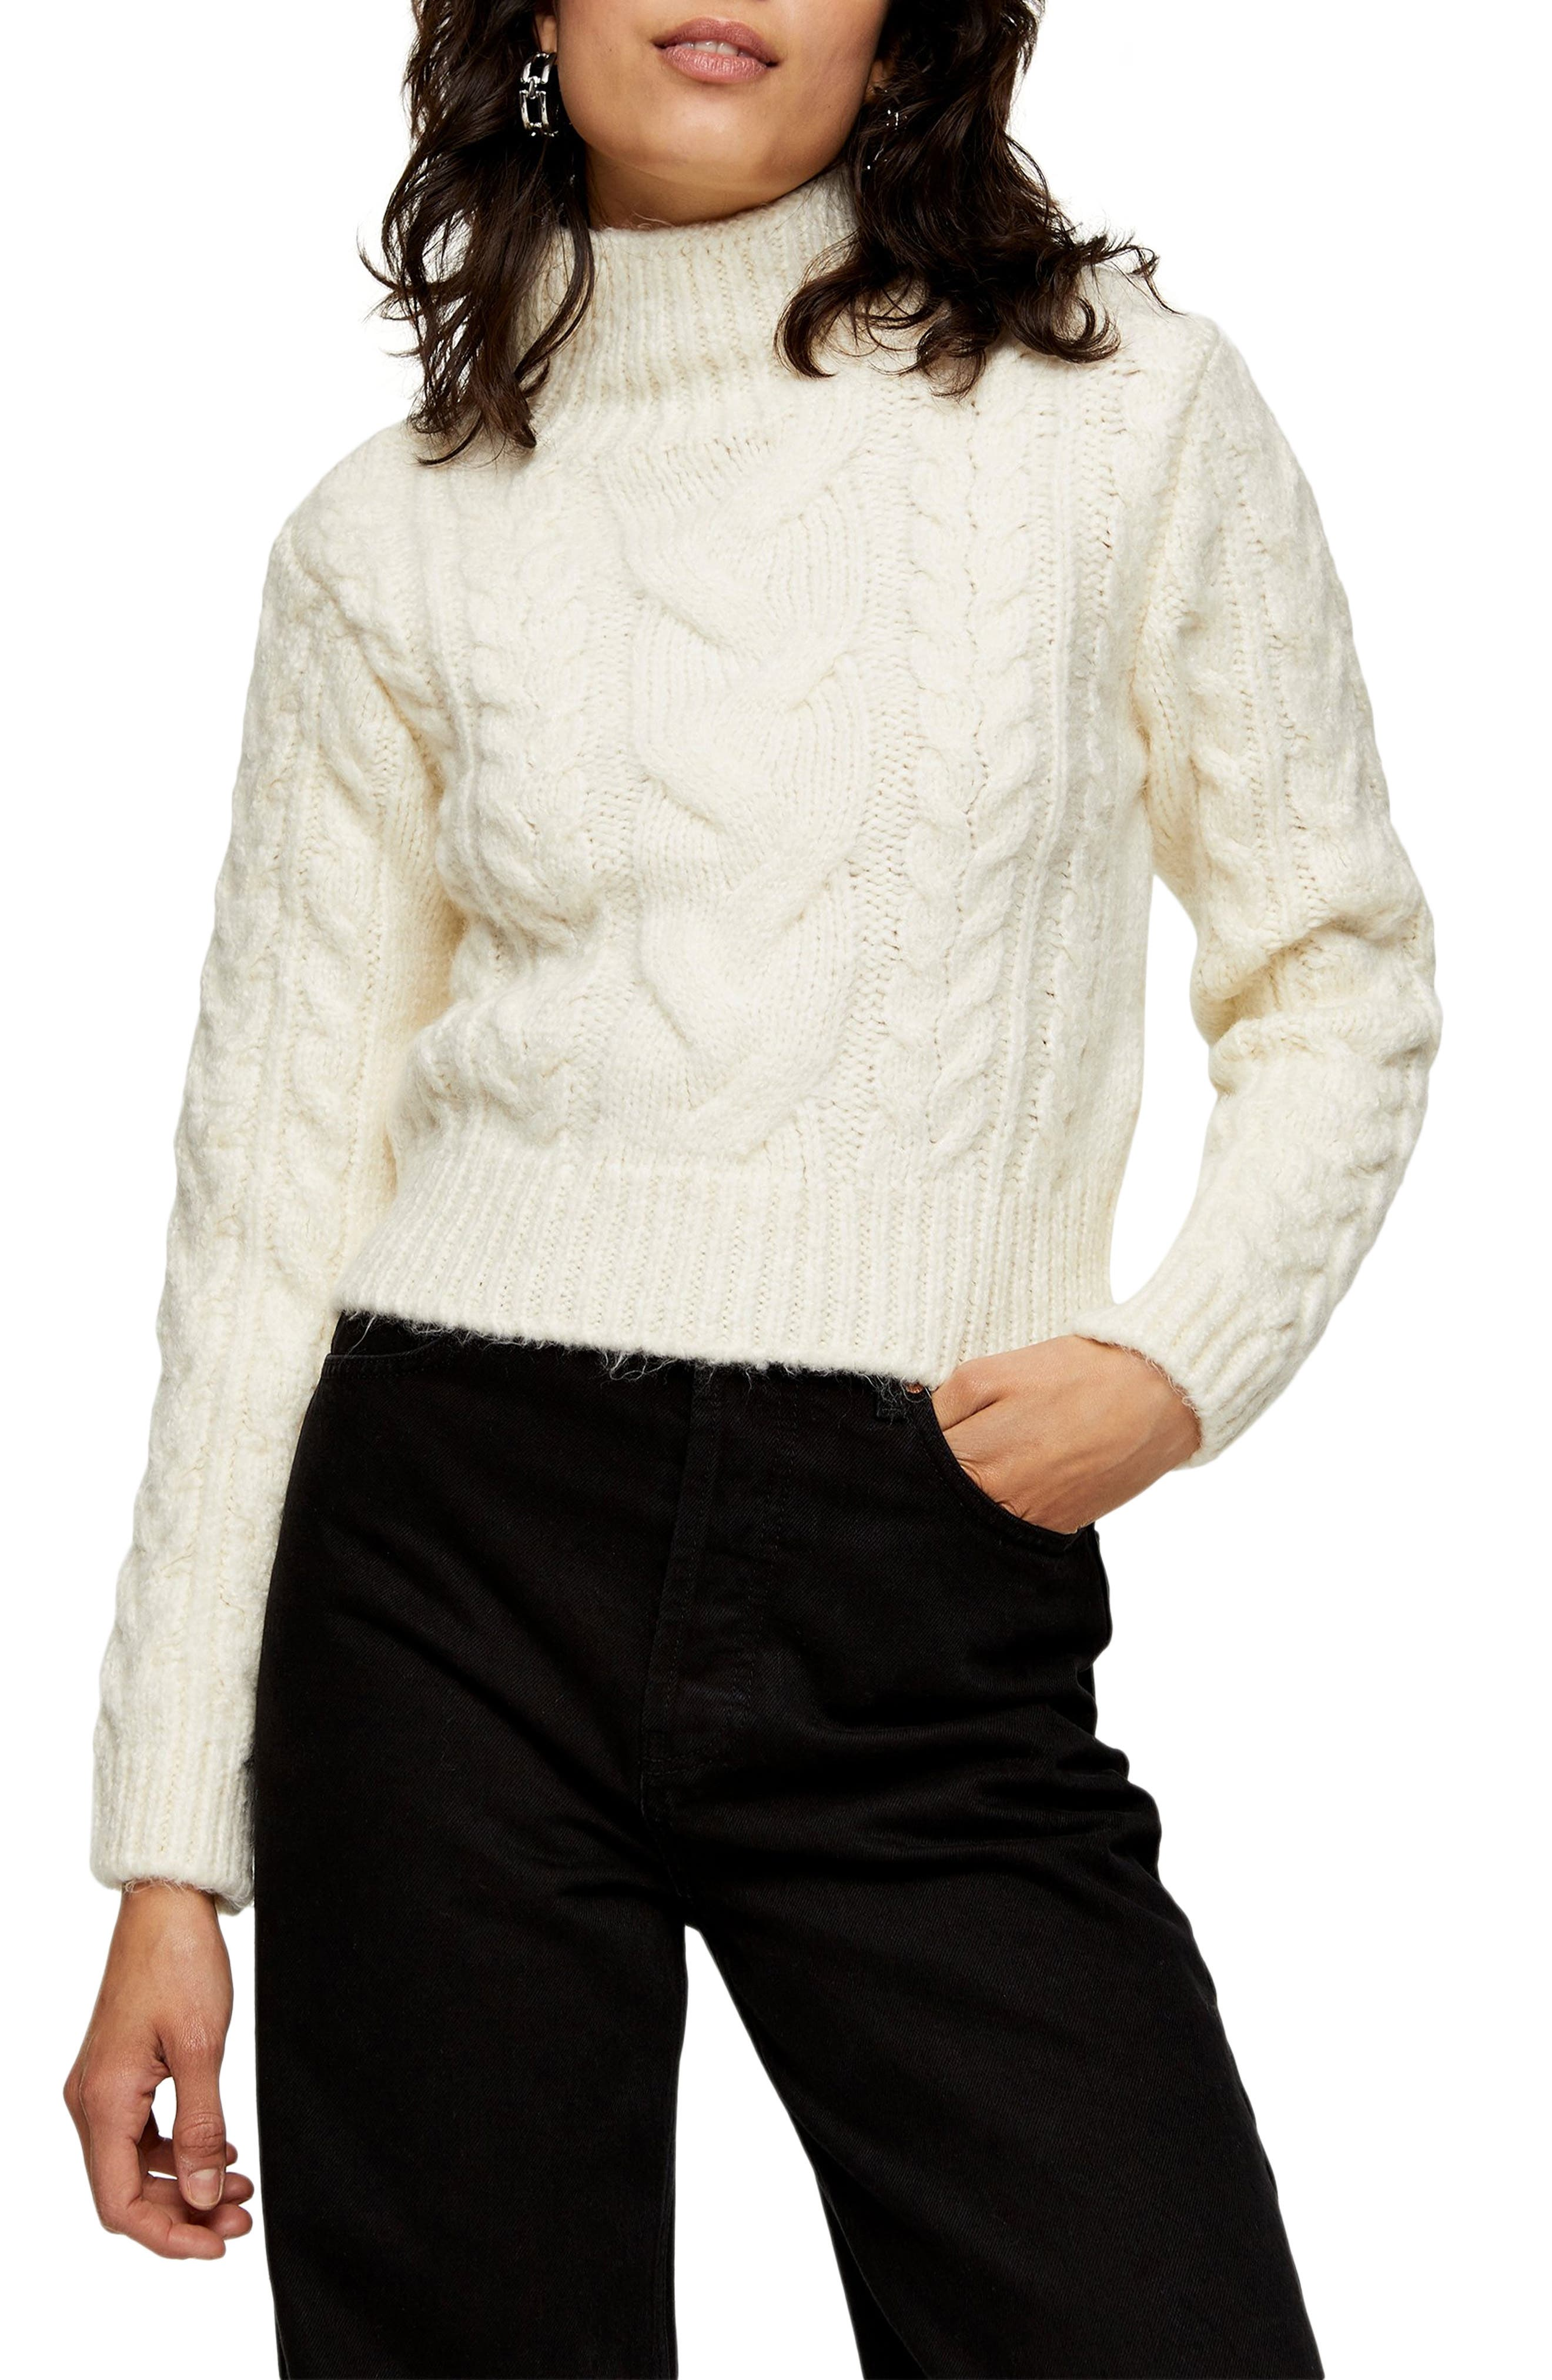 1930s Style Sweaters | Vintage Sweaters Womens Topshop Cable Roll Crop Sweater $68.00 AT vintagedancer.com